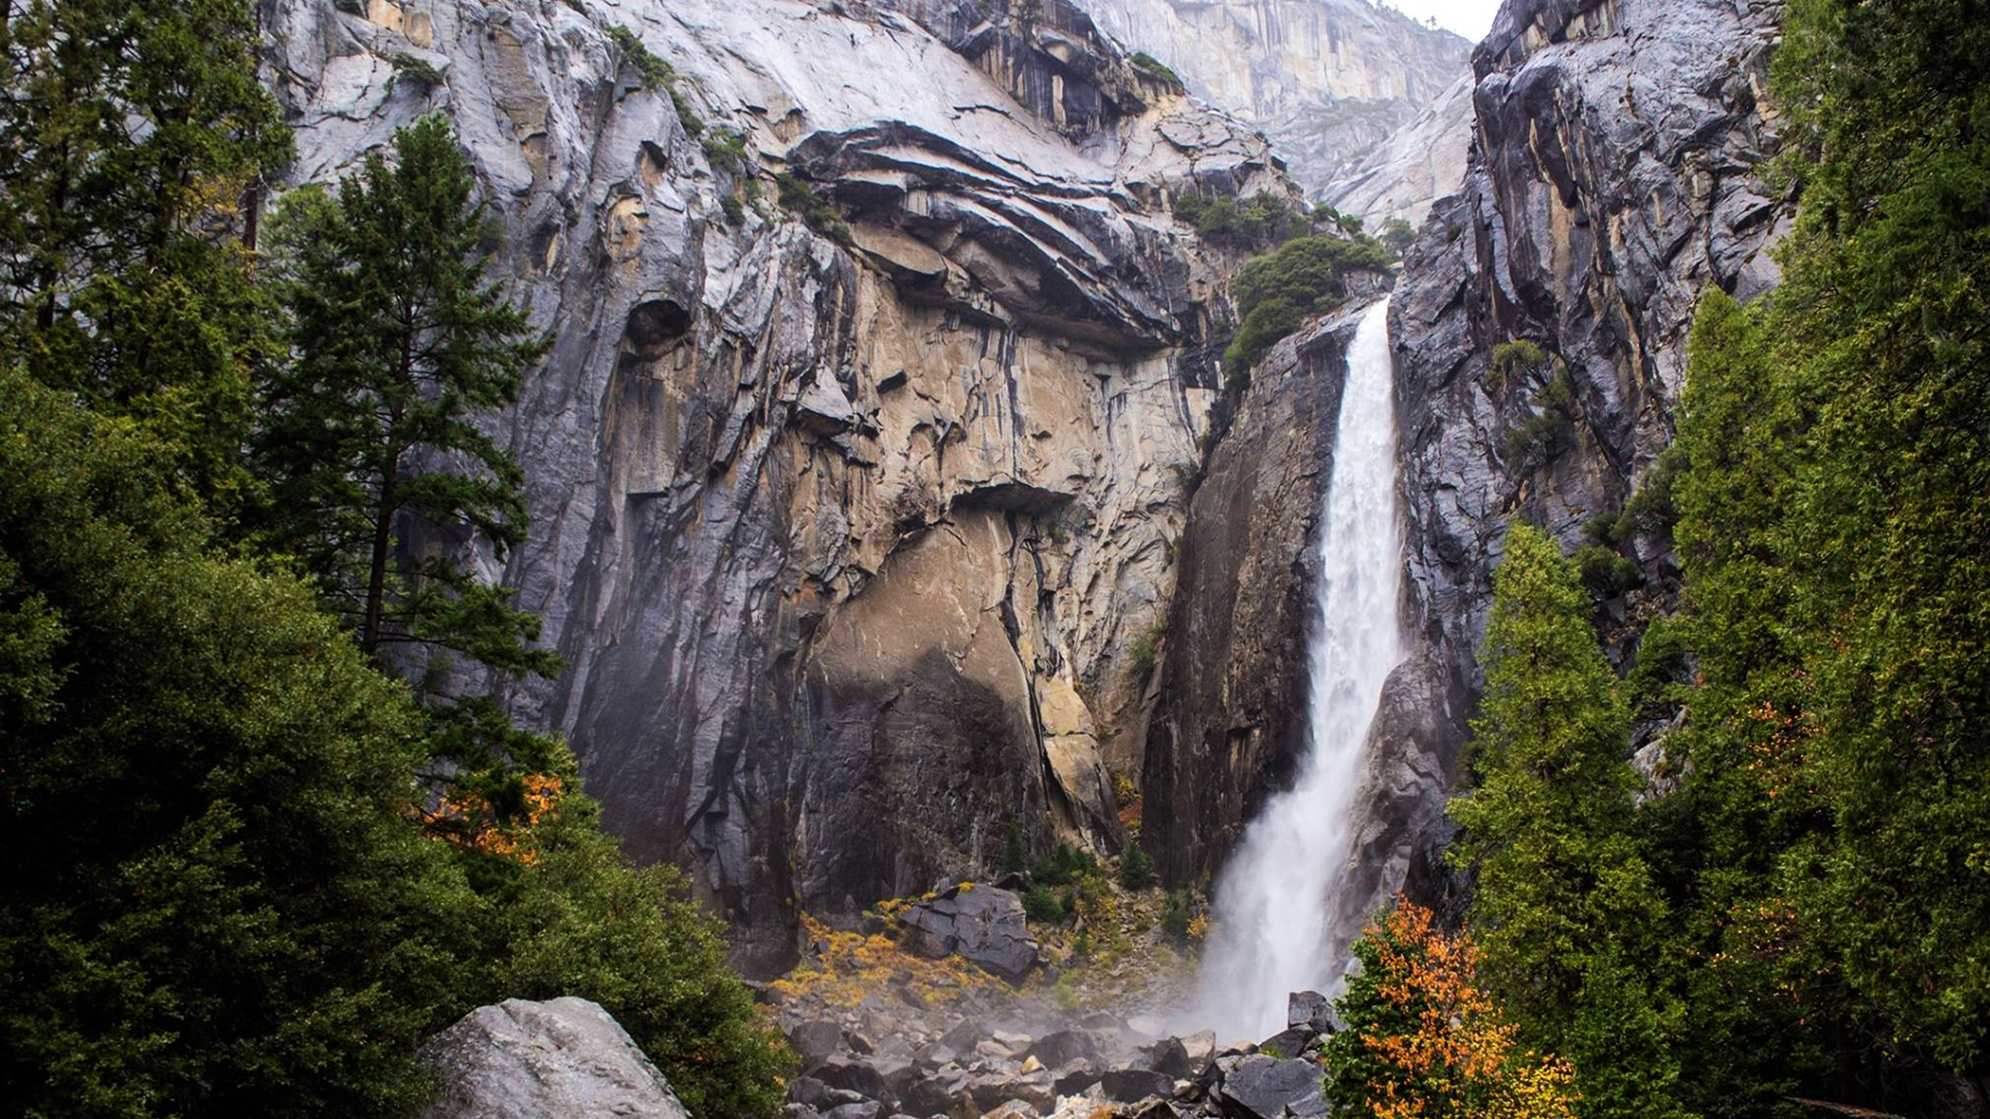 Lower Yosemite Falls is seen in December 2014.